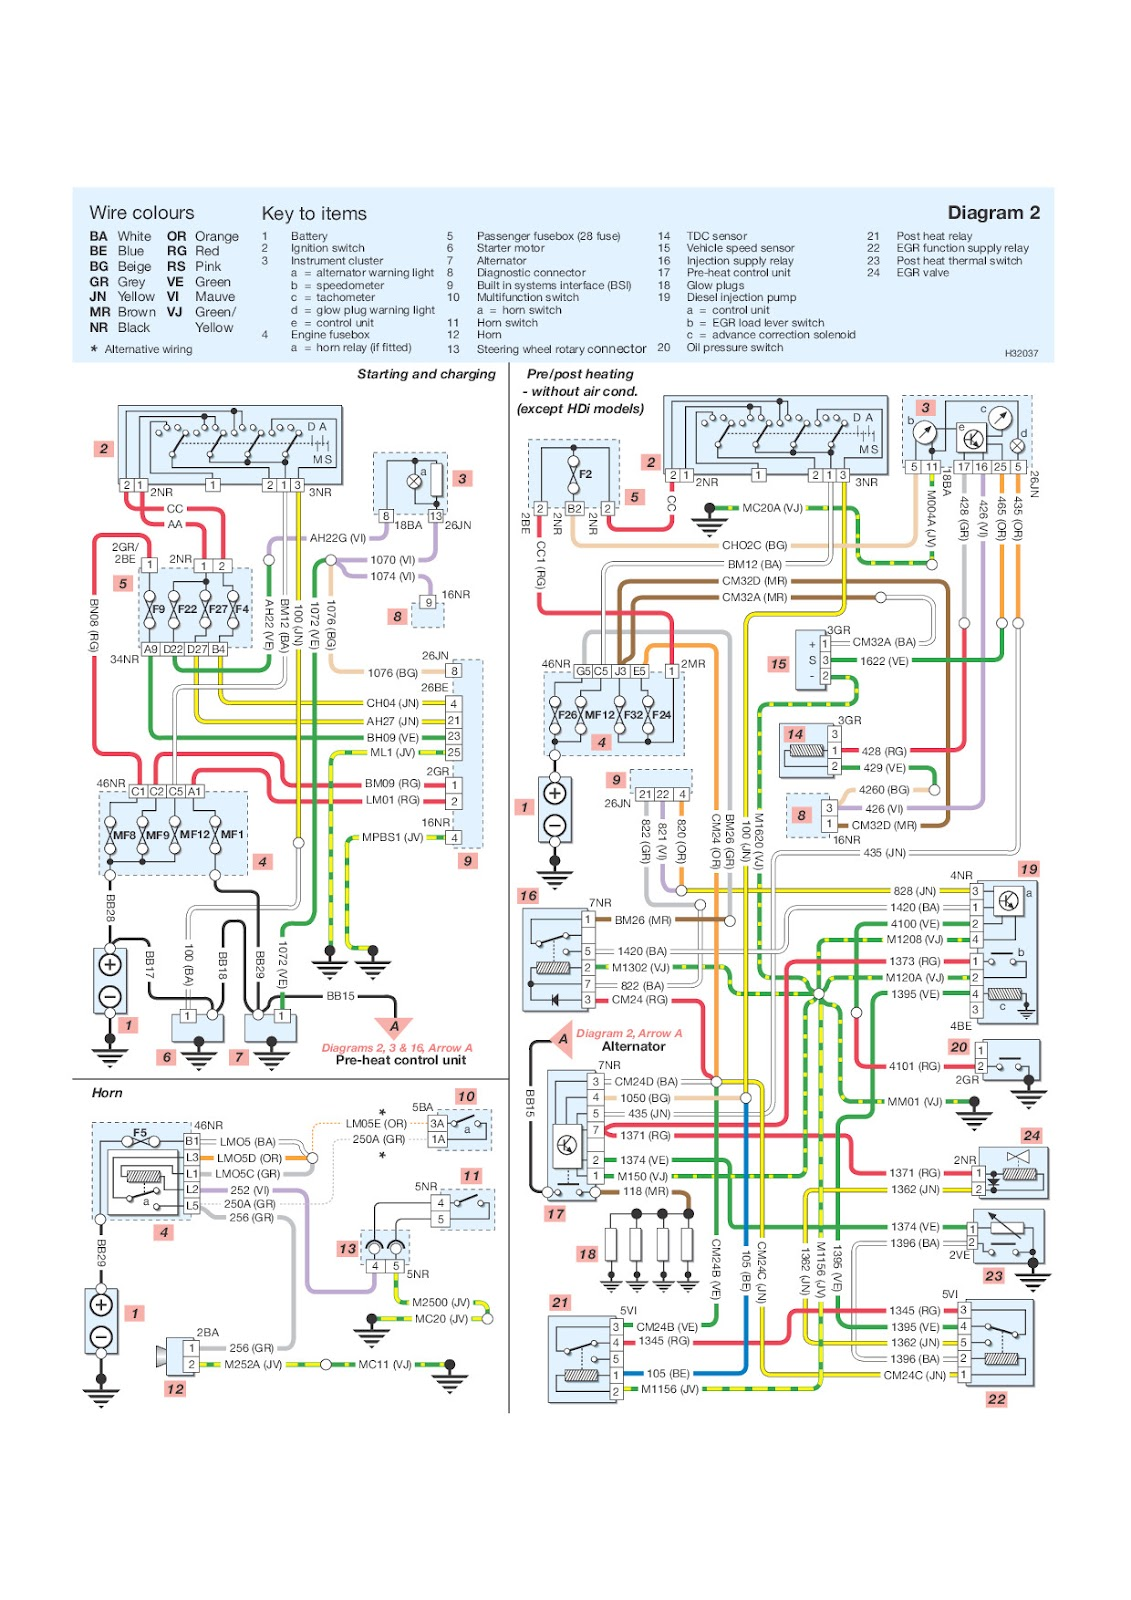 your wiring diagrams source peugeot 206 starting charging horn rh allwiringdiagrams blogspot com peugeot 206 radio wiring harness peugeot 206 radio wiring diagram